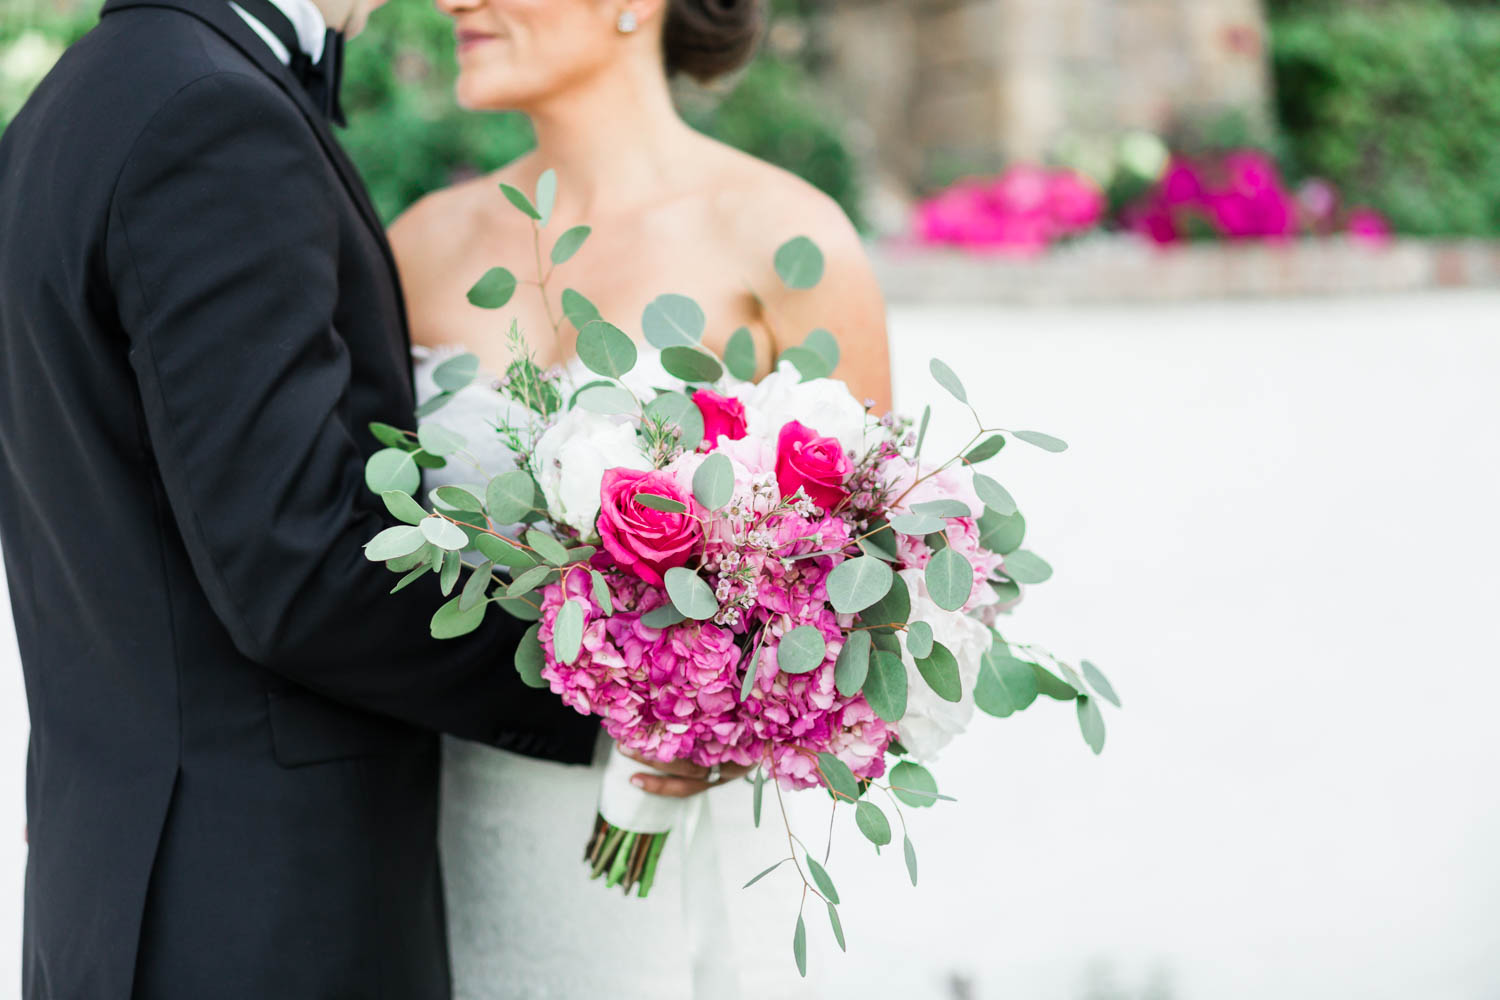 Bride holding purple pink green and white bouquet, Cavin Elizabeth Photography